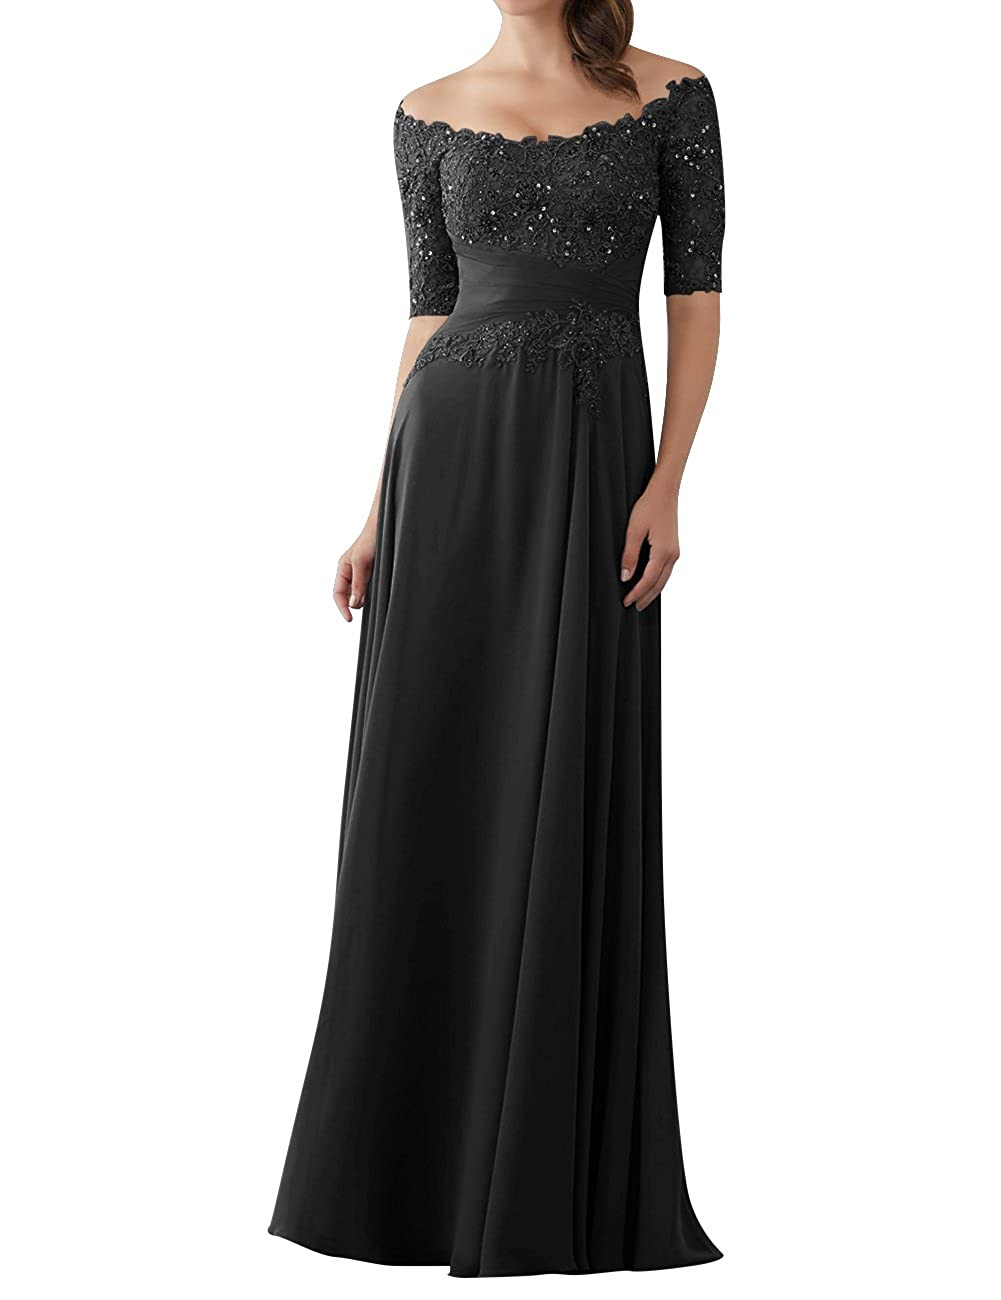 07810f5f0d6 Size can be adjusted to 2 inch bigger or smaller! When you receive the dress